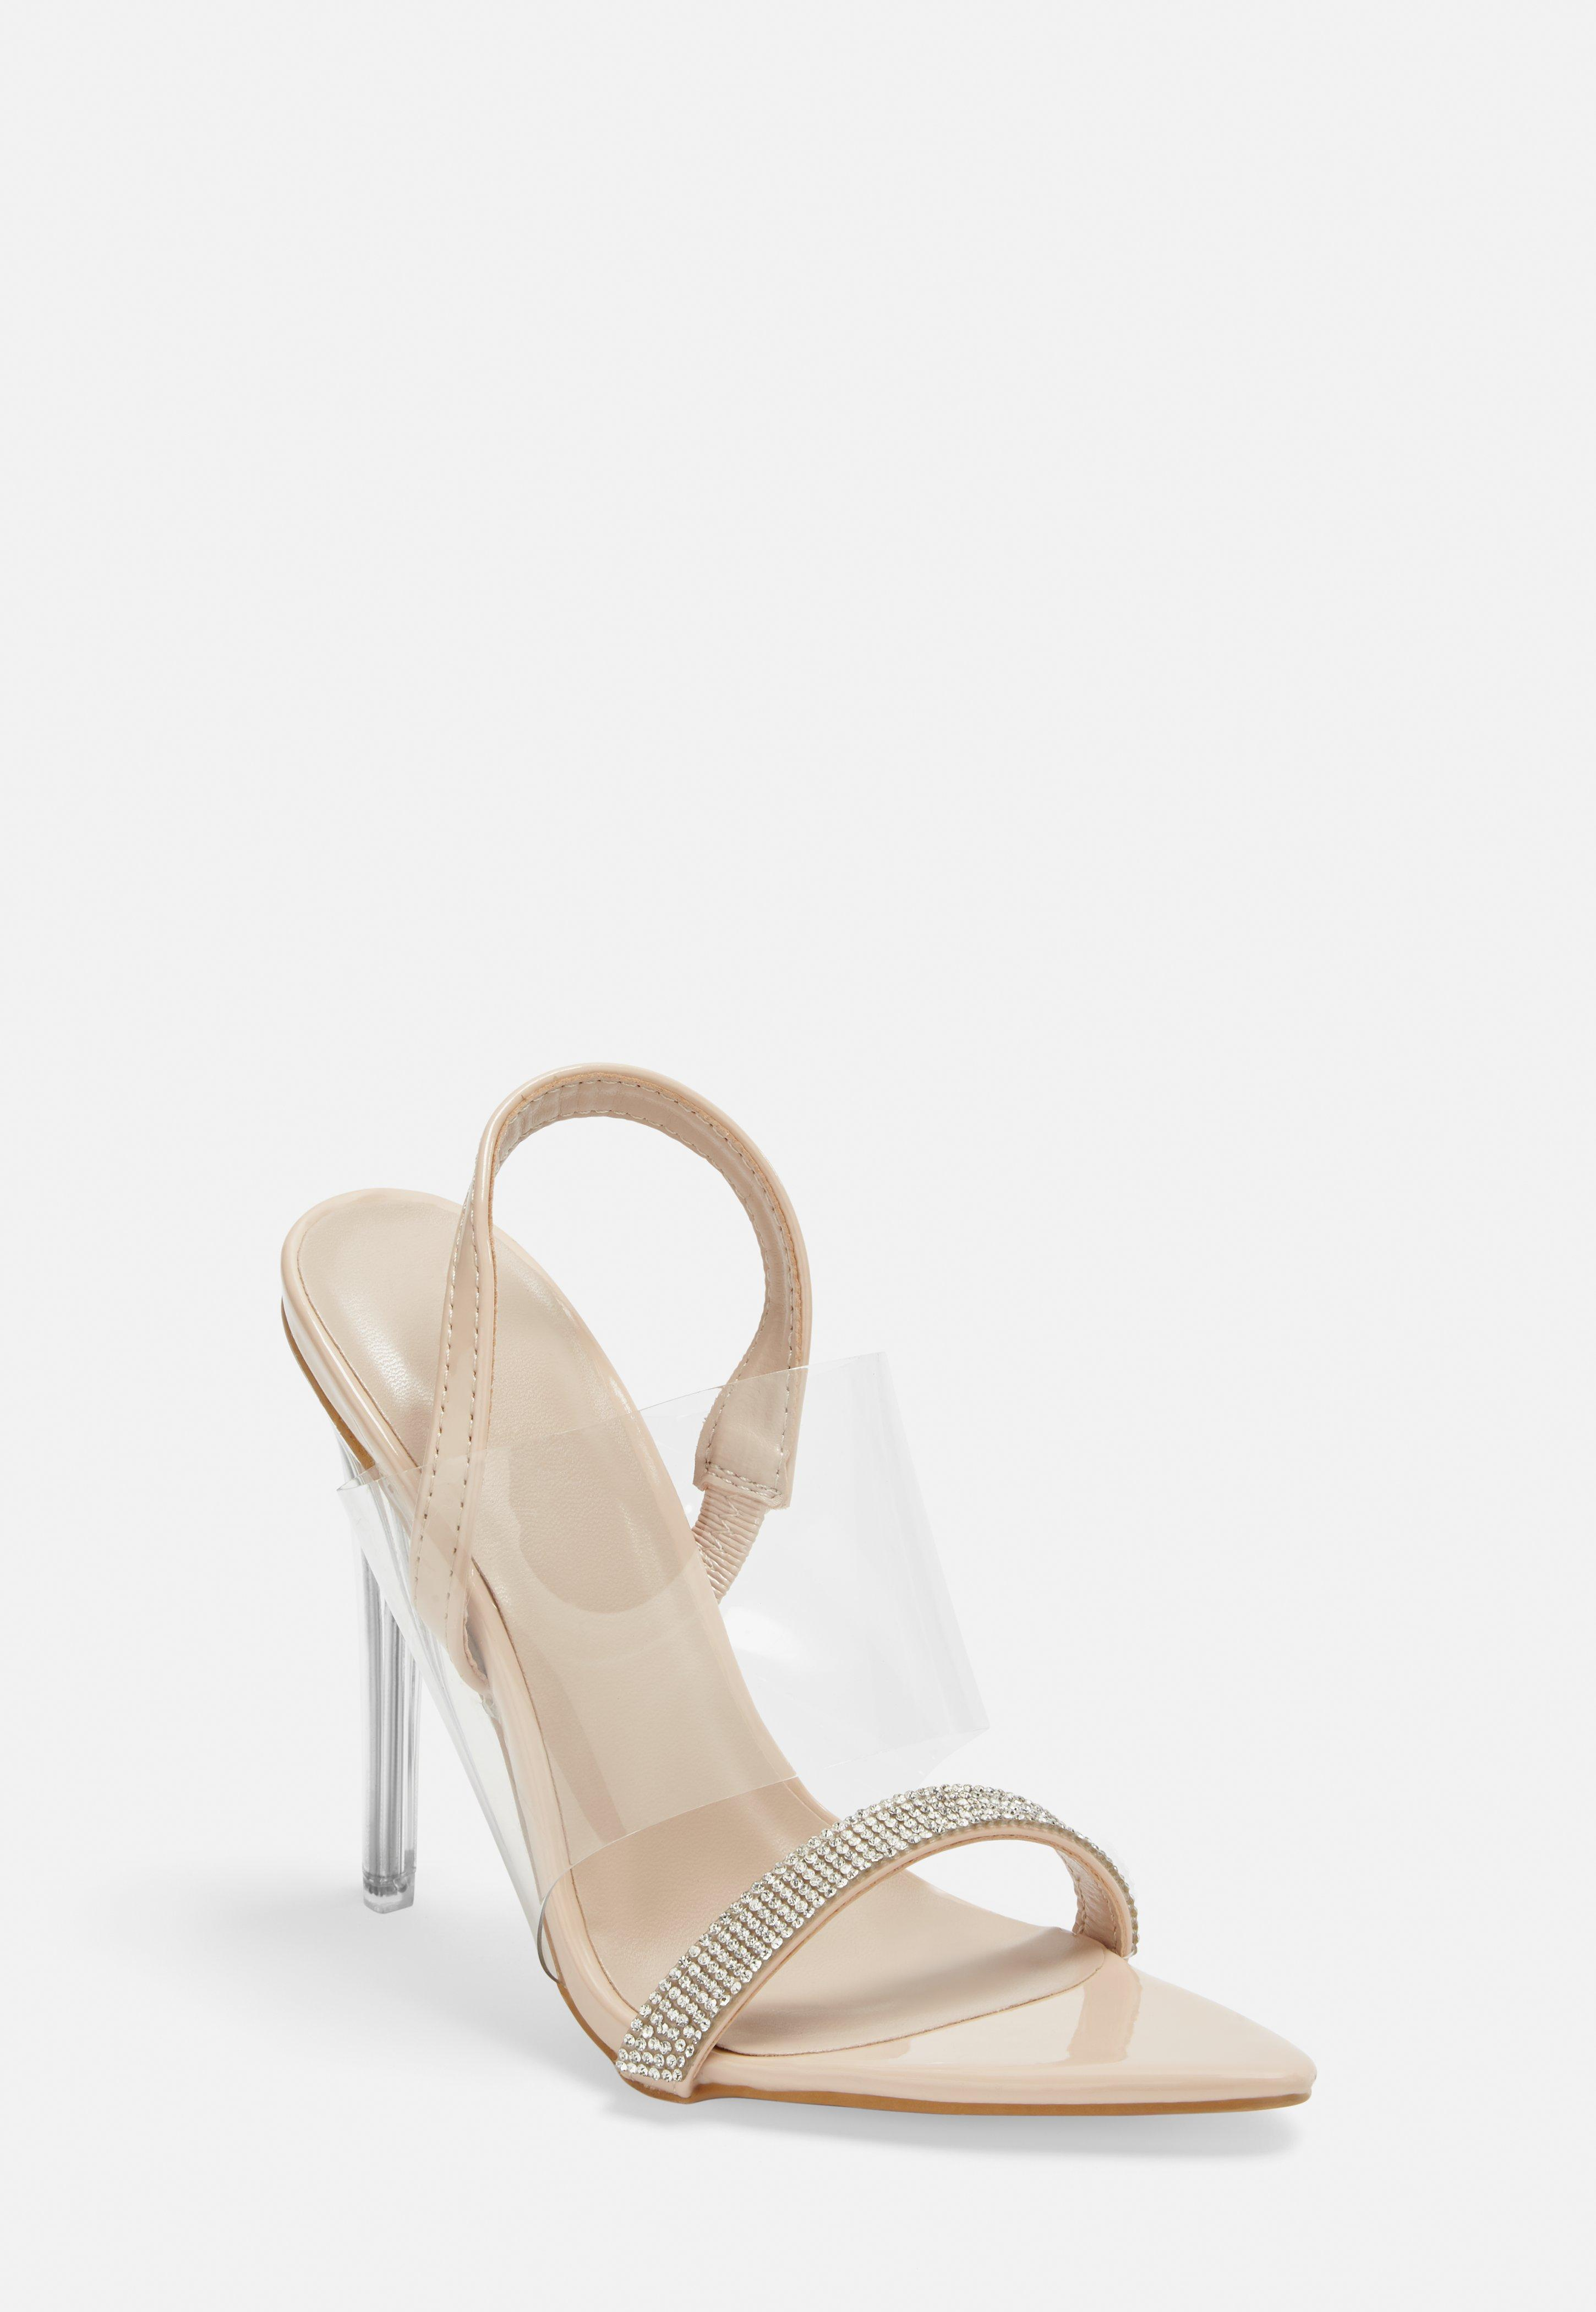 7ab956ff95 Heeled Sandals   Strappy & Barely There Heels - Missguided